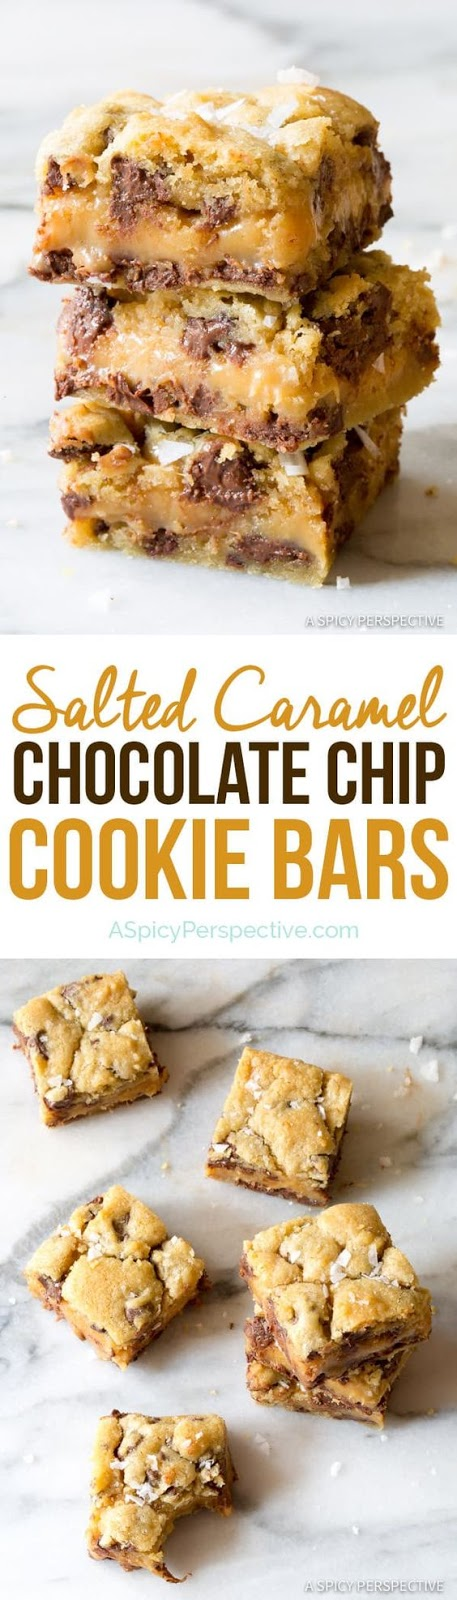 Amazing Salted Caramel Chocolate Chip Cookie Bars, with gooey caramel centers. This cookie bar recipe is so delicious, everyone will ask for the recipe. #ASpicyPerspective #cookiebars #cookies #chocolatechip #baking #dessert #saltedcaramel #caramel